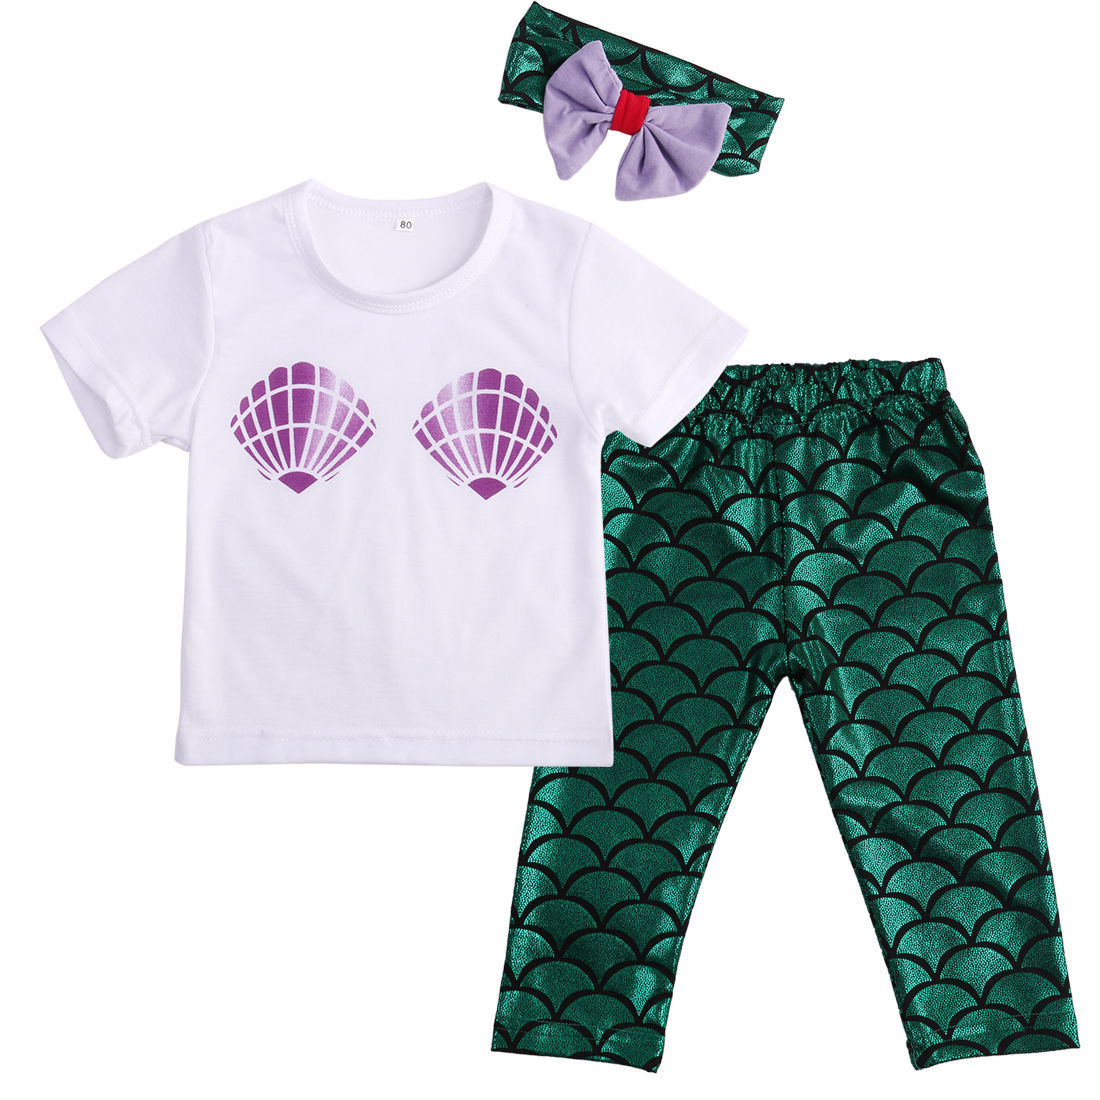 2018 Latest Children's Wear Kids Infant Toddler Baby Girl Clothes Shell Tops T shirt Mermaid Pants Leggings Headband 3PCS Outfit ahua 4mp cctv ip camera ipc hdbw4433r as support ik10 ip67 audio